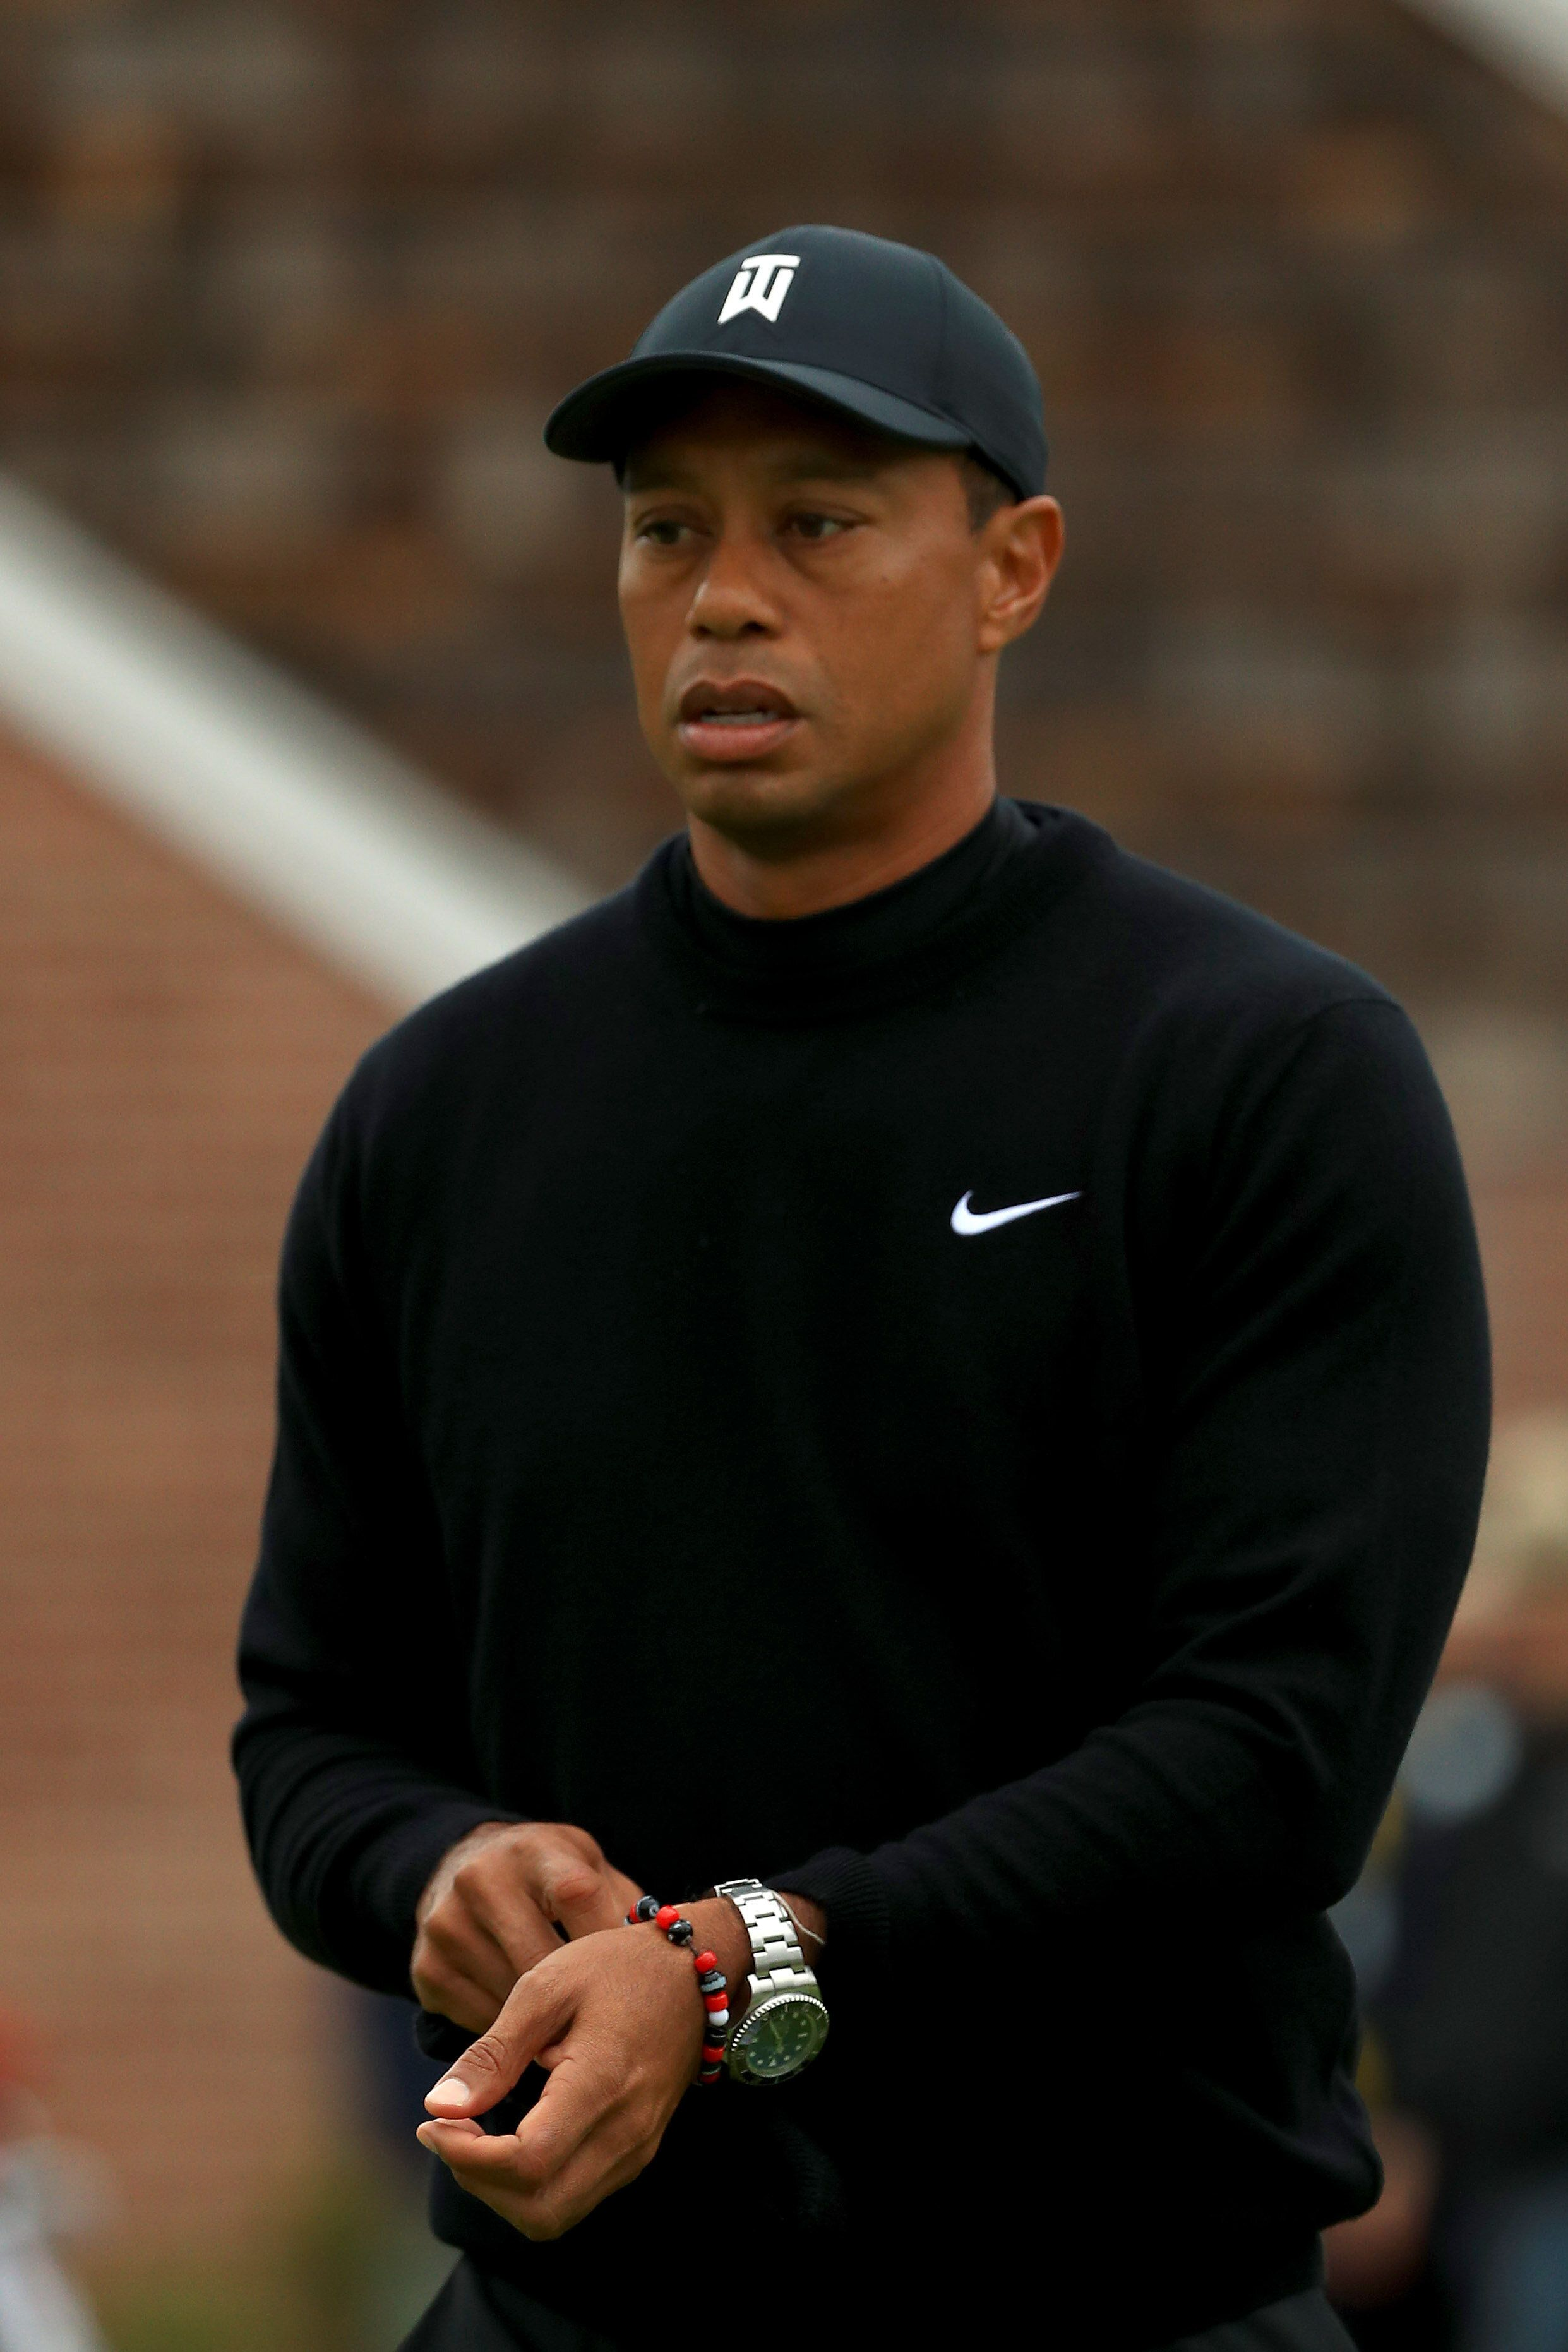 BETHPAGE, NEW YORK - MAY 14: Tiger Woods of the United States looks on during a practice round prior to the 2019 PGA Championship at the Bethpage Black course on May 14, 2019 in Bethpage, New York. (Photo by Mike Ehrmann/Getty Images)